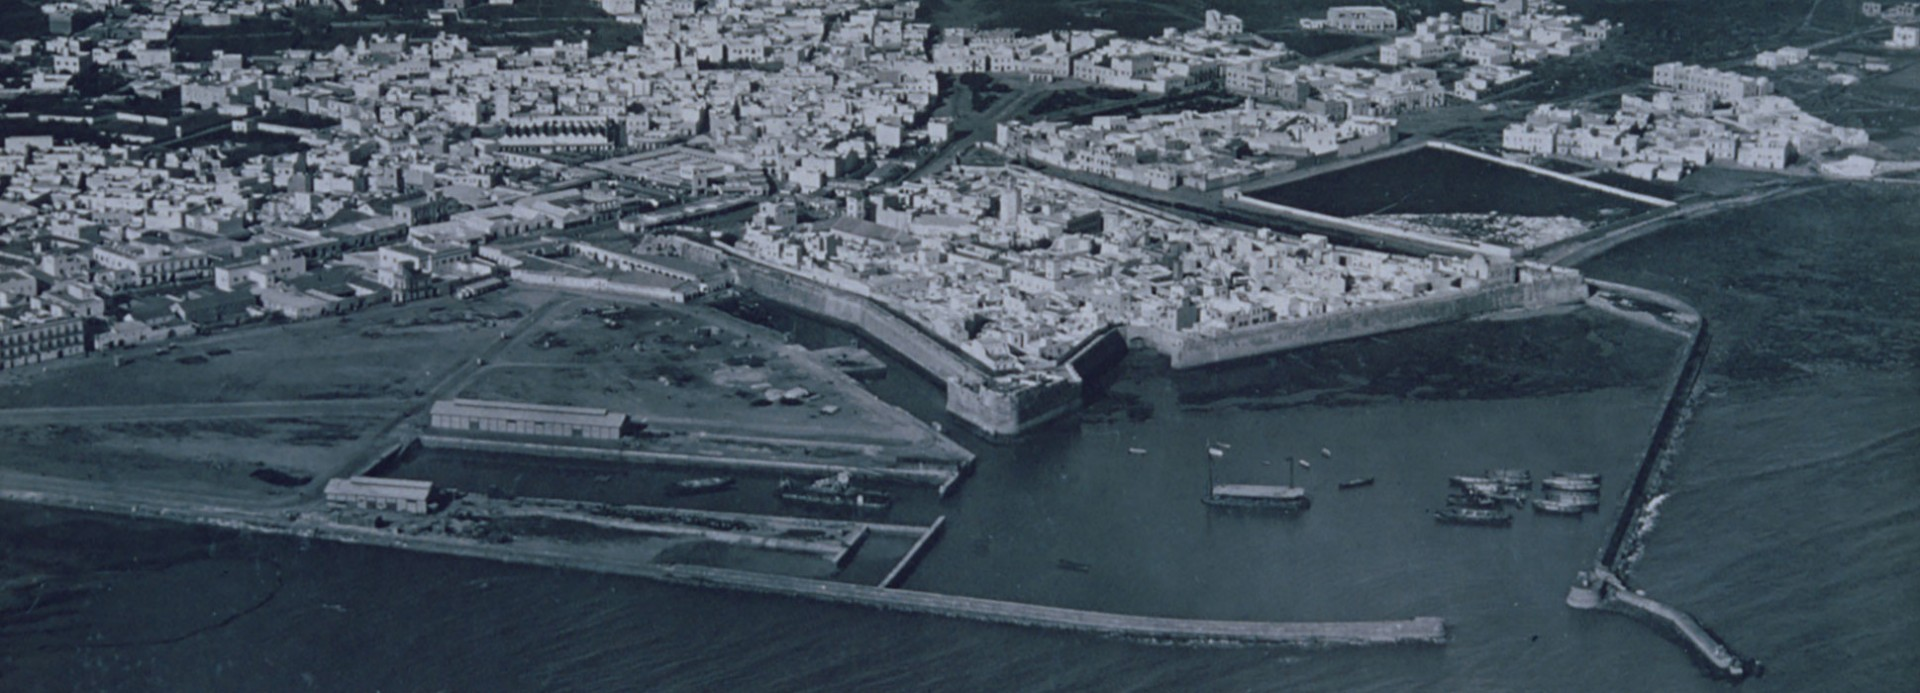 """Guest Lecture: """"History, Heritage And Design: Urban Tales From El Jadida, Morocco"""" – Jorge Correia"""